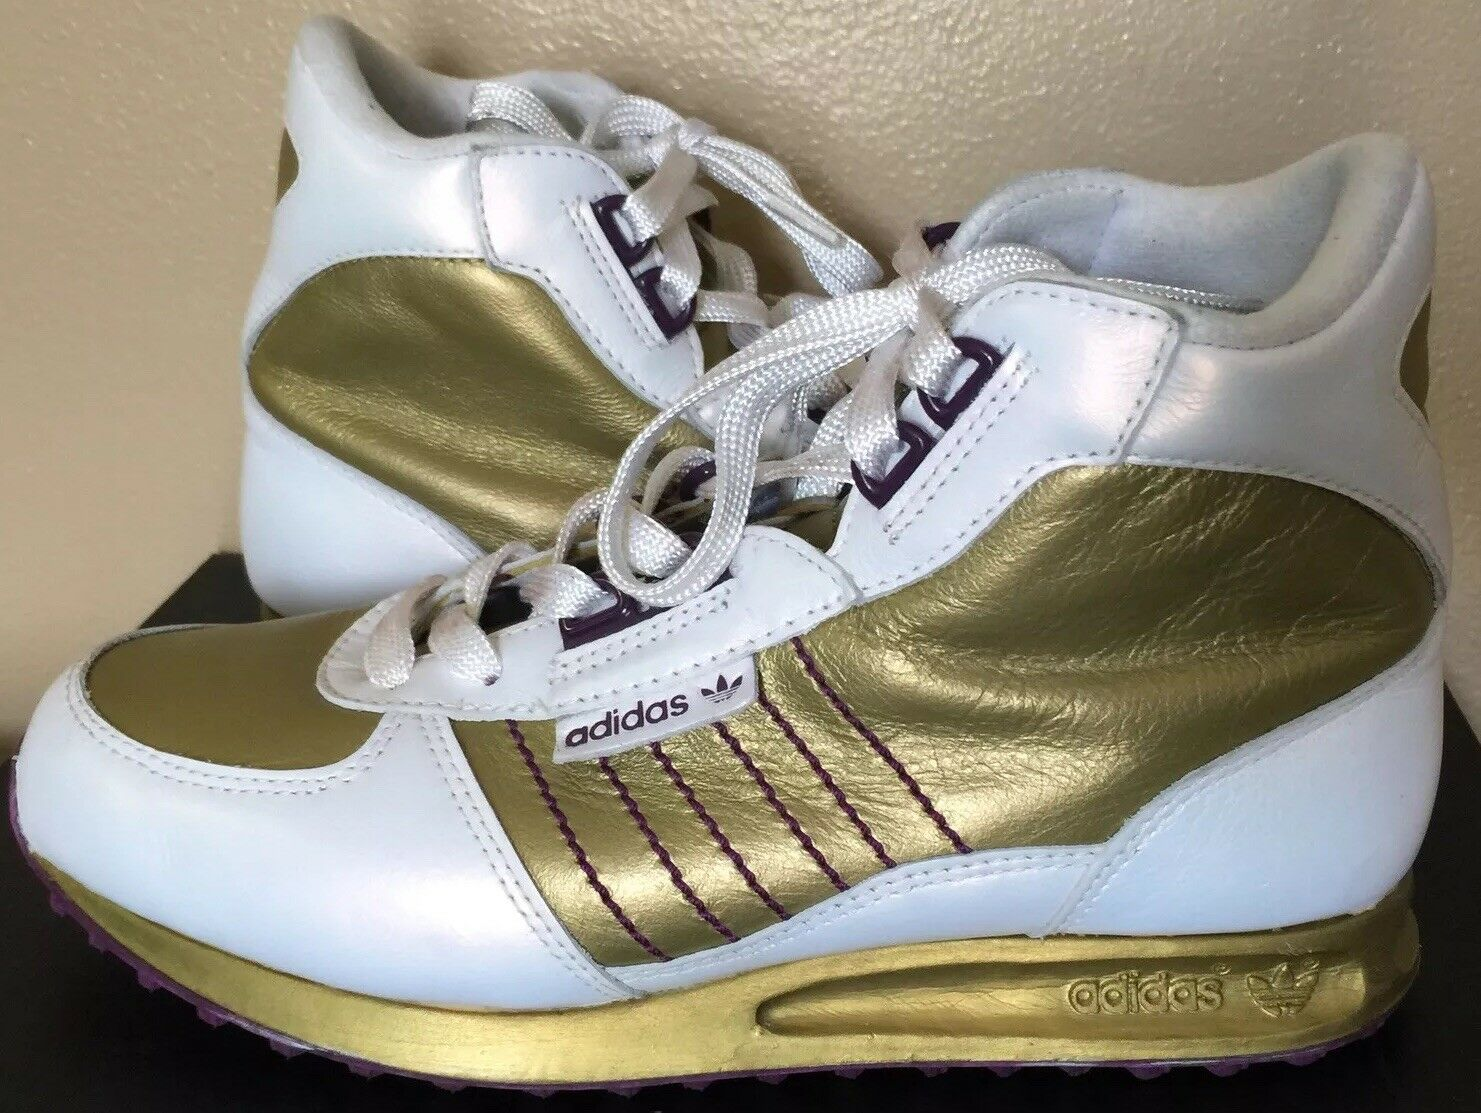 Adidas Women shoes Size 7 Hi Top gold White  with Purple Sole